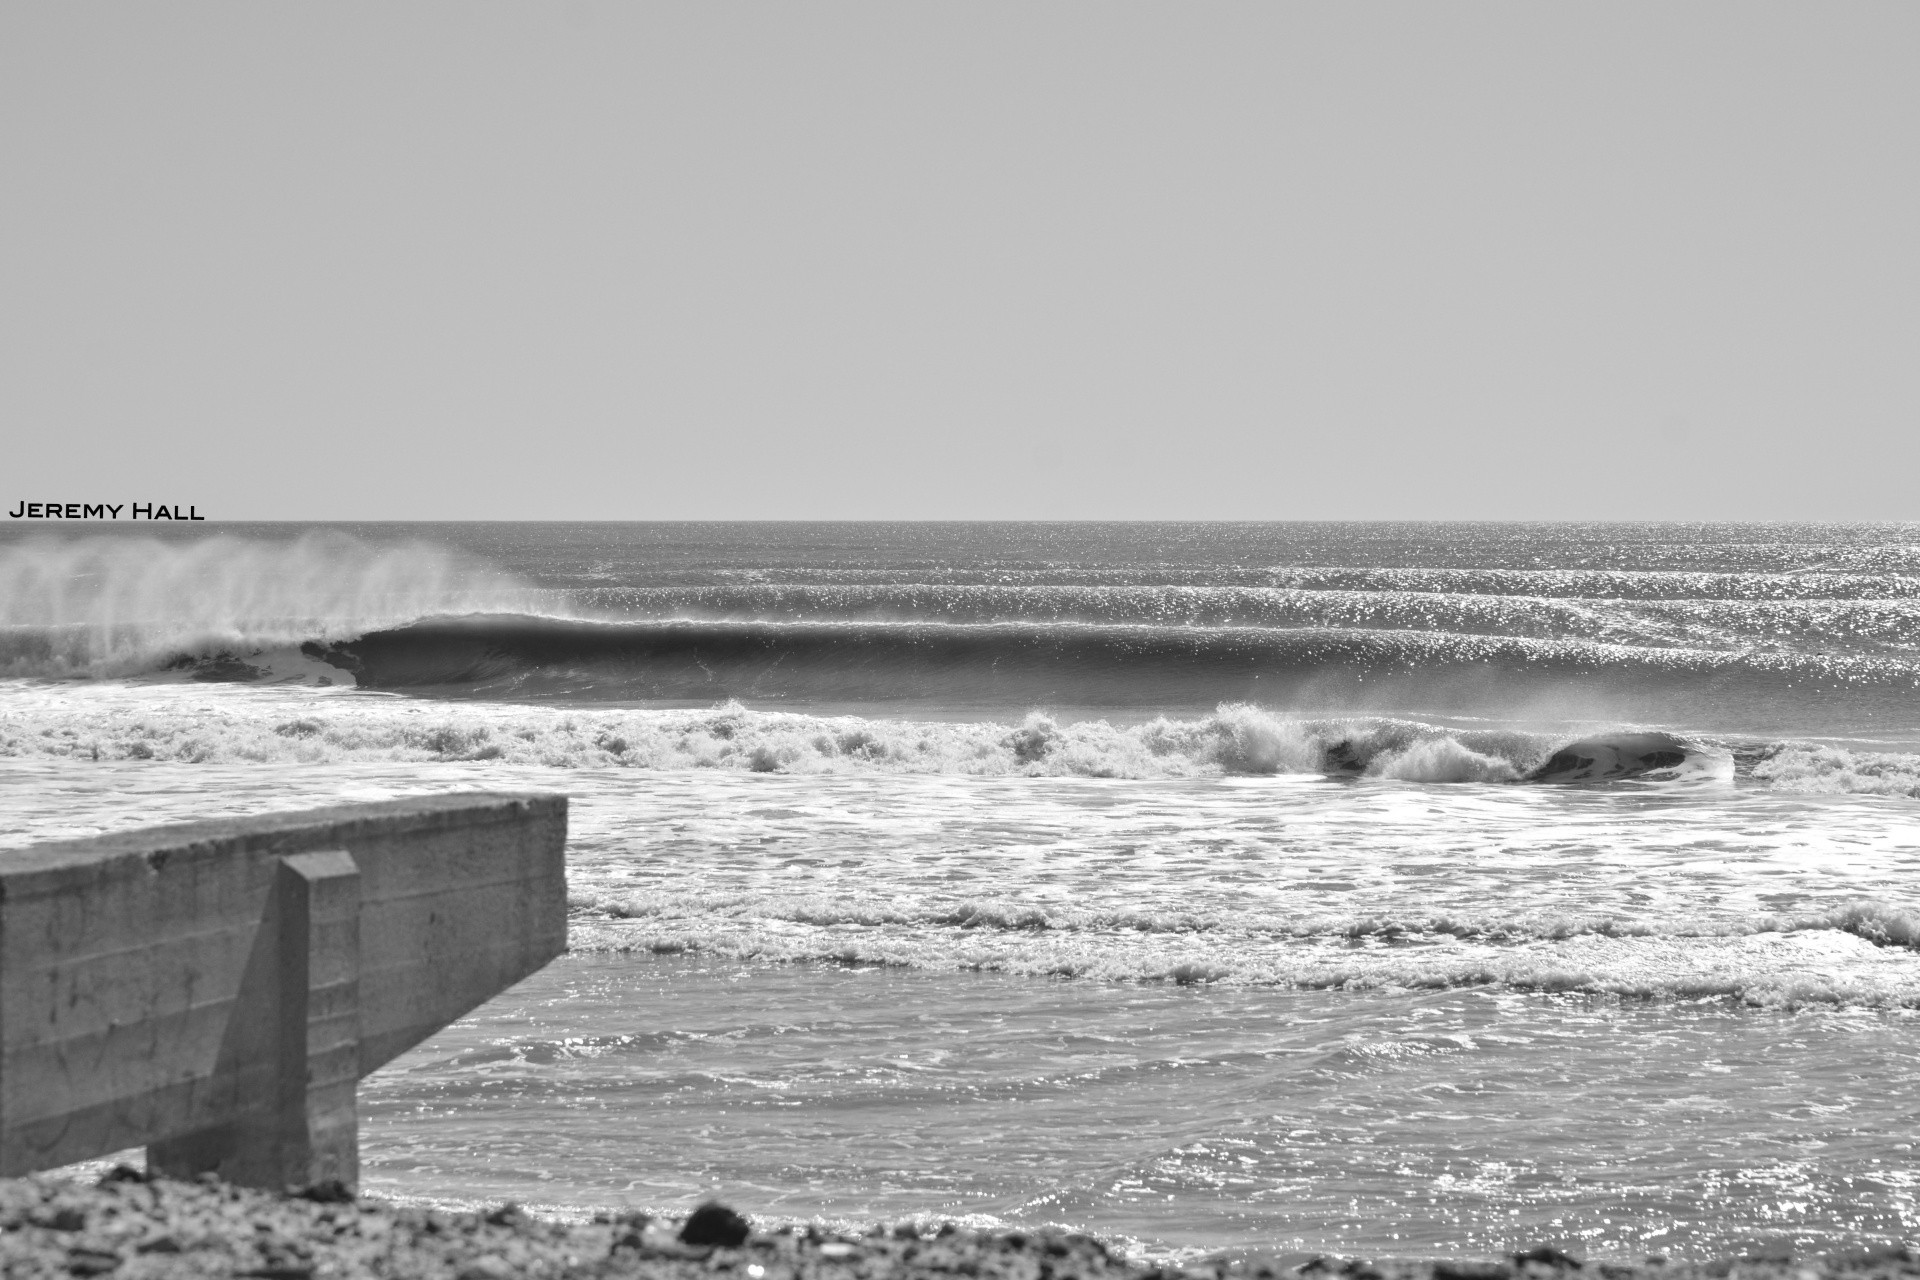 Jeremy Hall Photography's photo of Rockaway